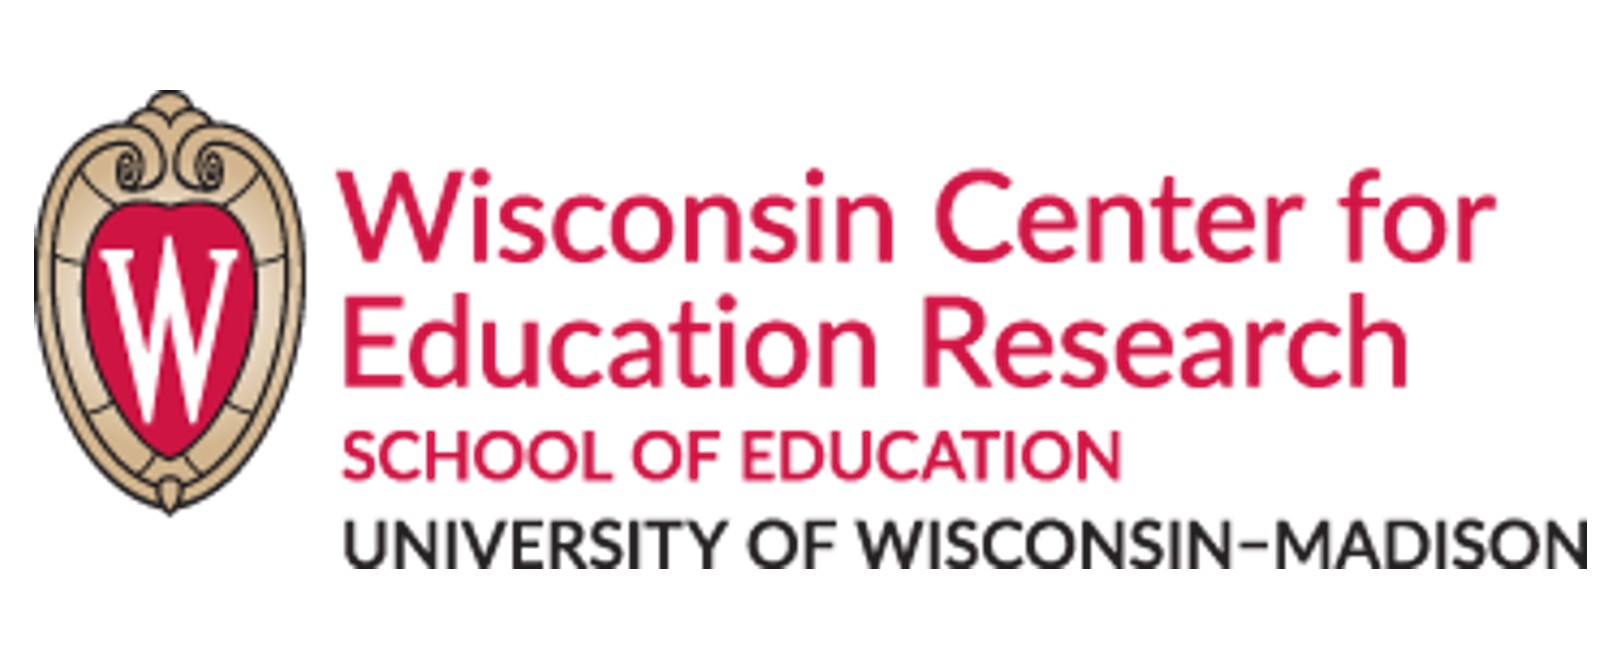 Wisconsin Center for Education Research